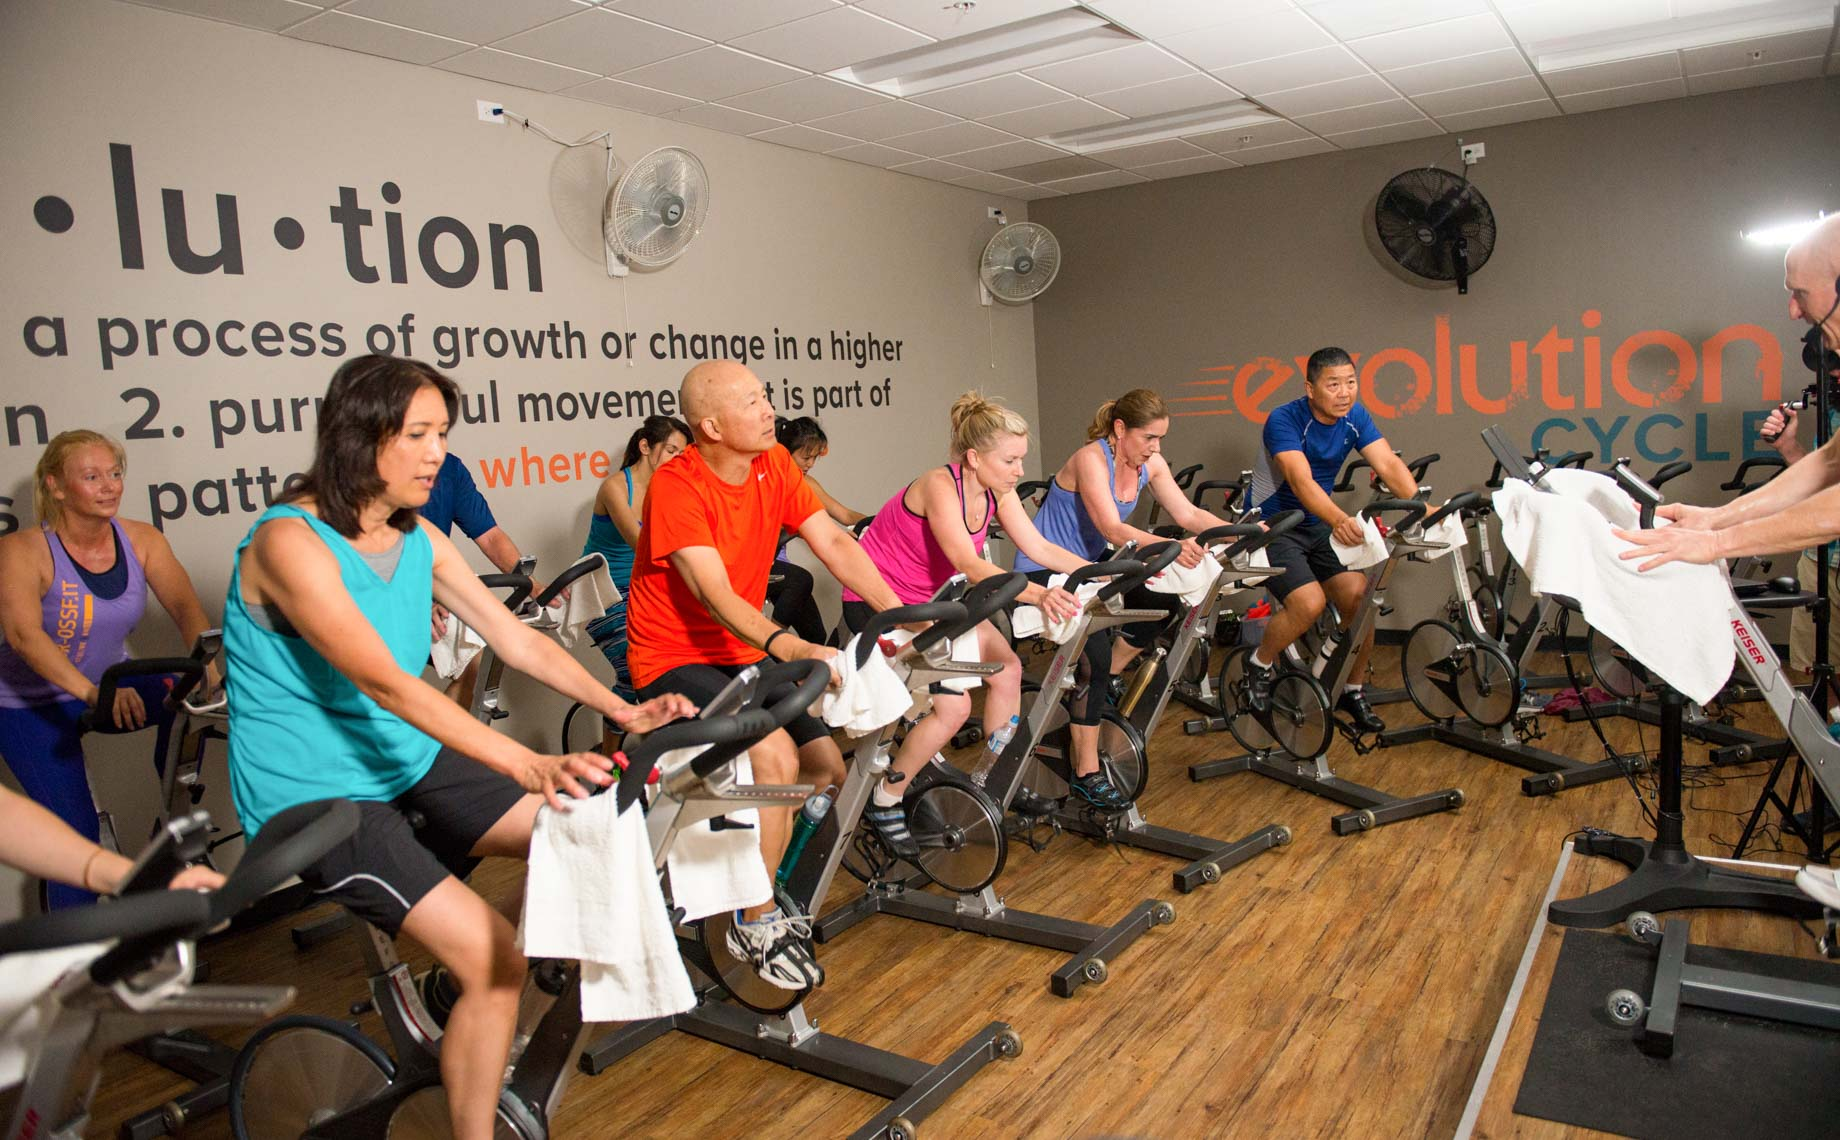 People cycling during an Evolution Cycle class